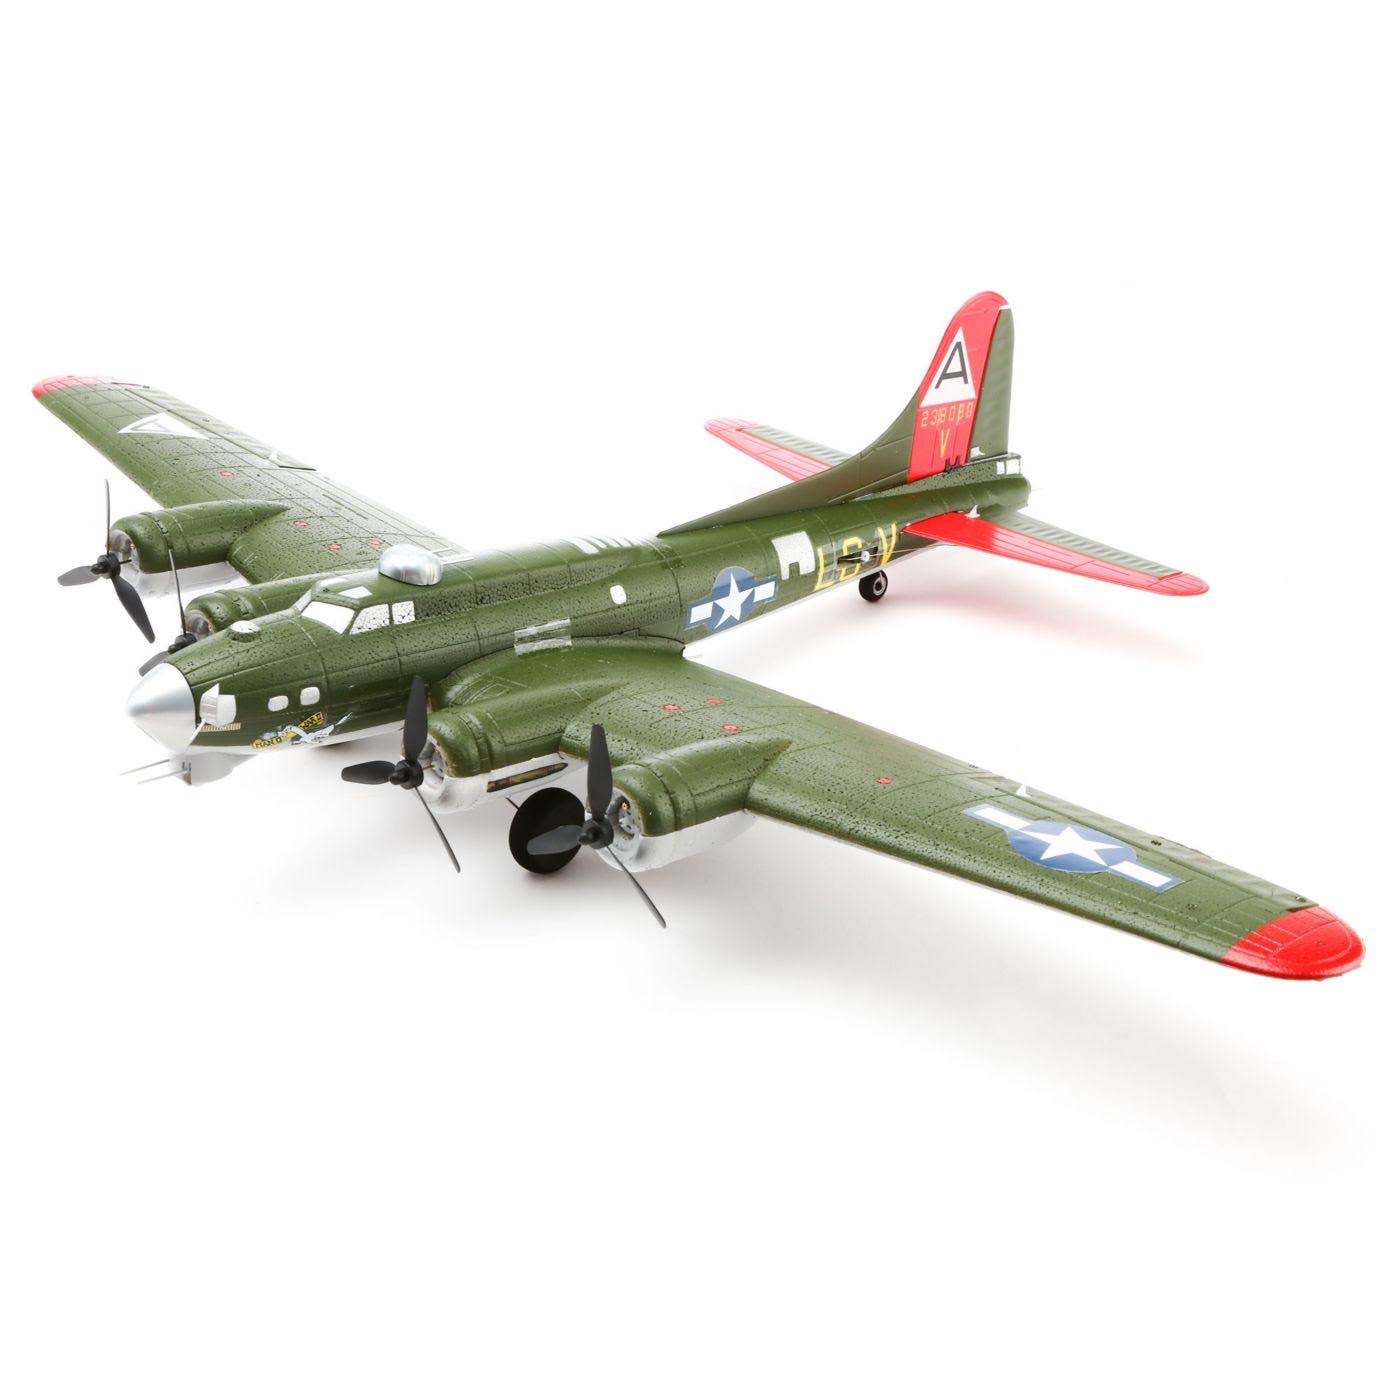 E-flite U5380 Umx B-17g Flying Fortress RC Vehicle Model Kit